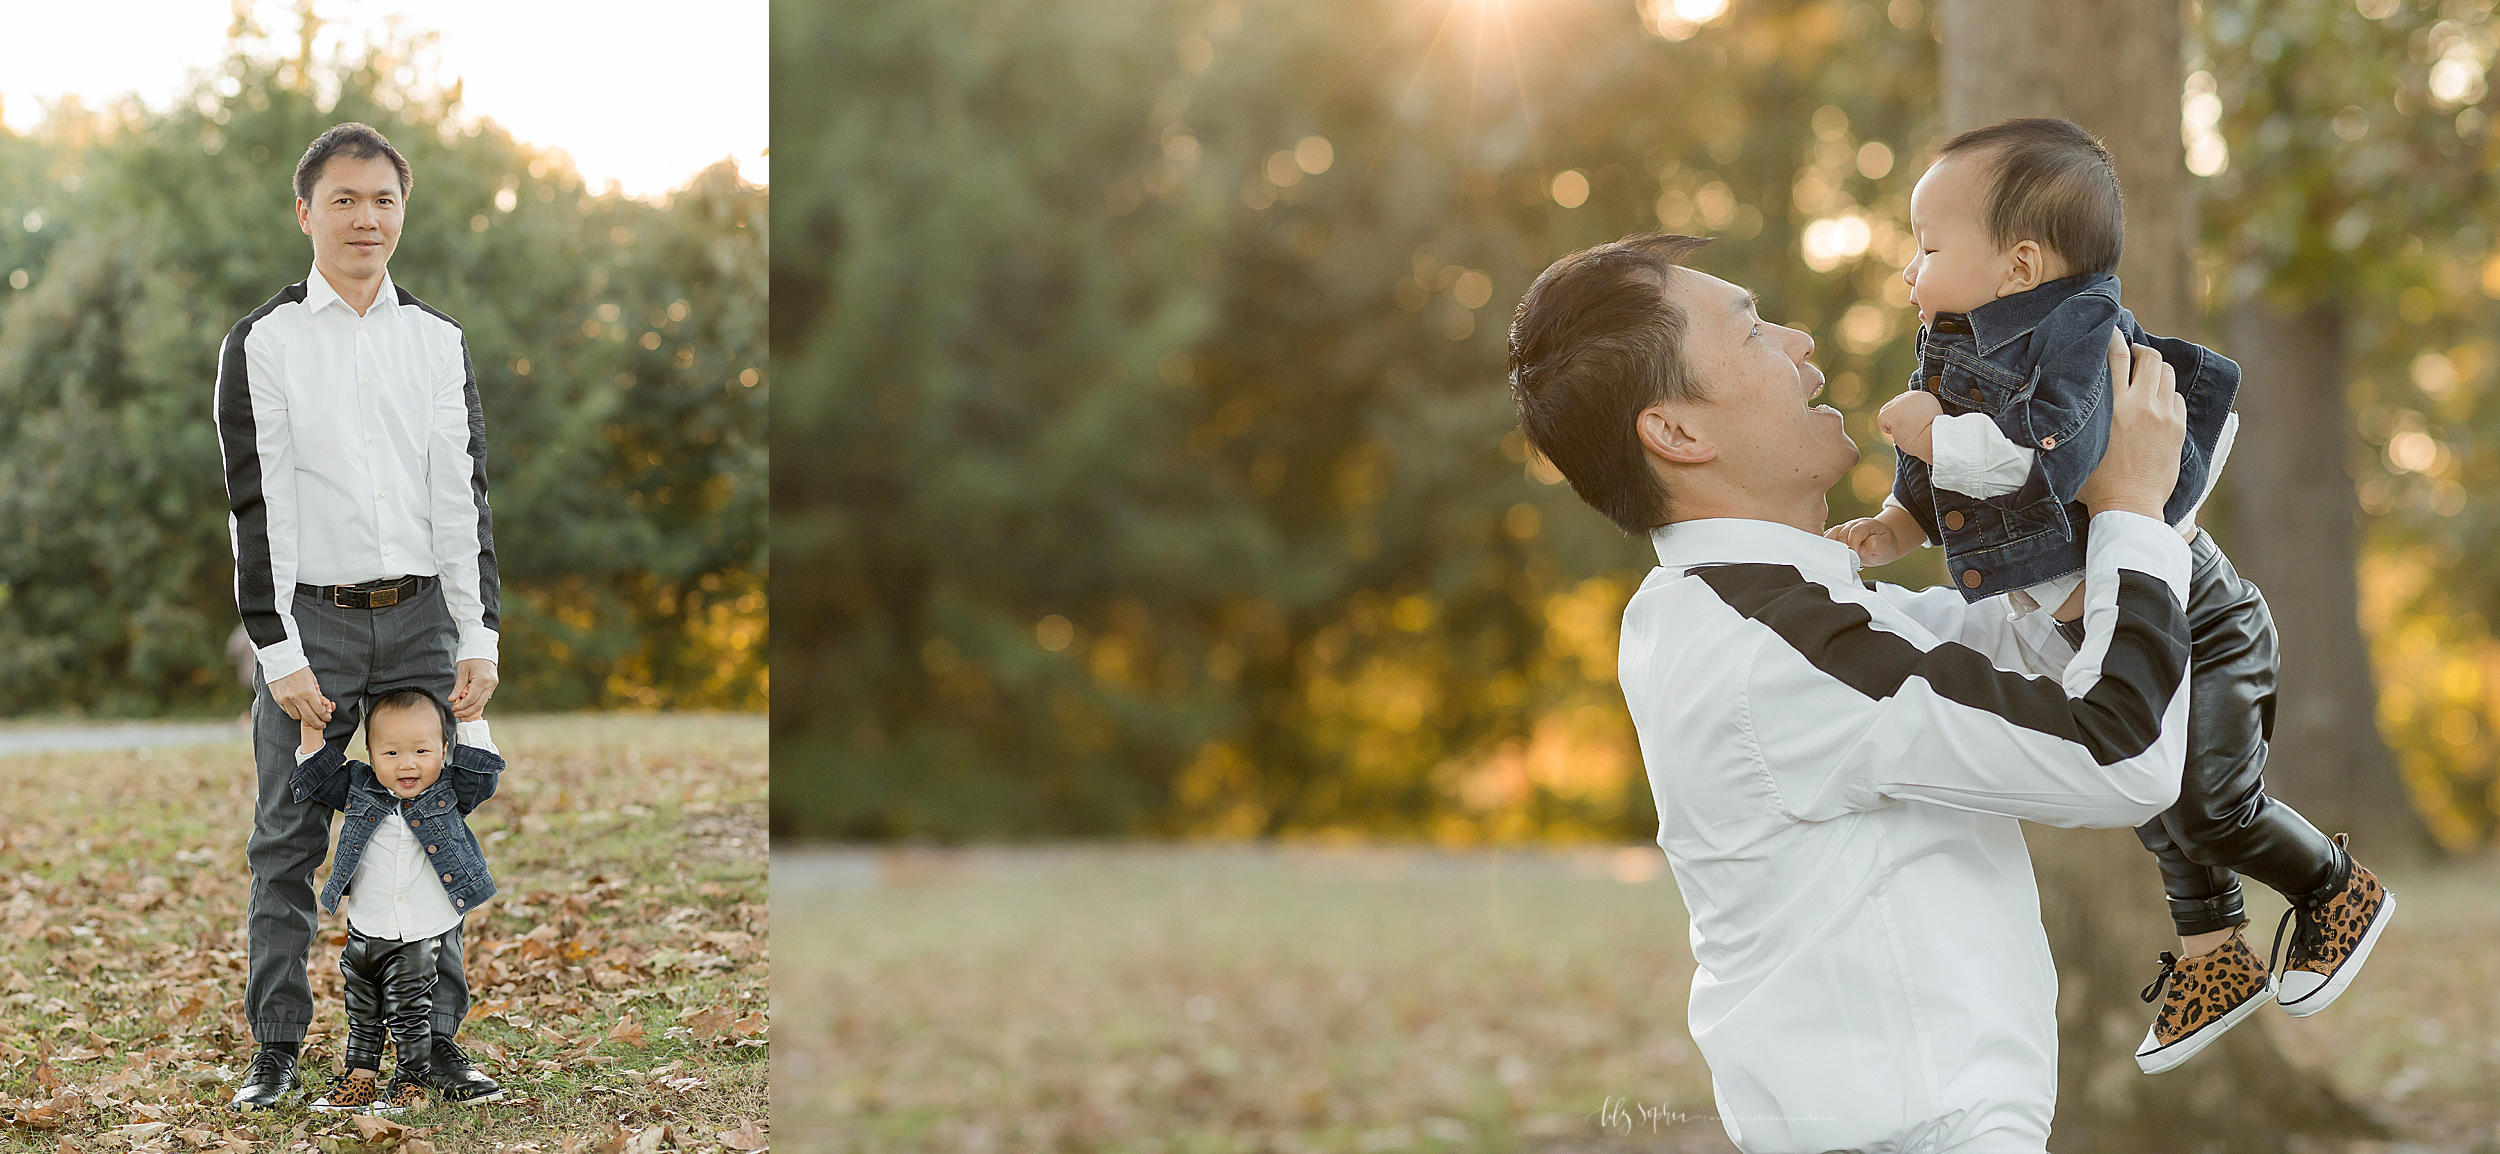 atlanta-buckhead-brookhaven-decatur-lily-sophia-photography--photographer-portraits-grant-park-intown-park-sunset-first-birthday-cake-smash-one-year-old-outdoors-cool-asian-american-family_0084.jpg